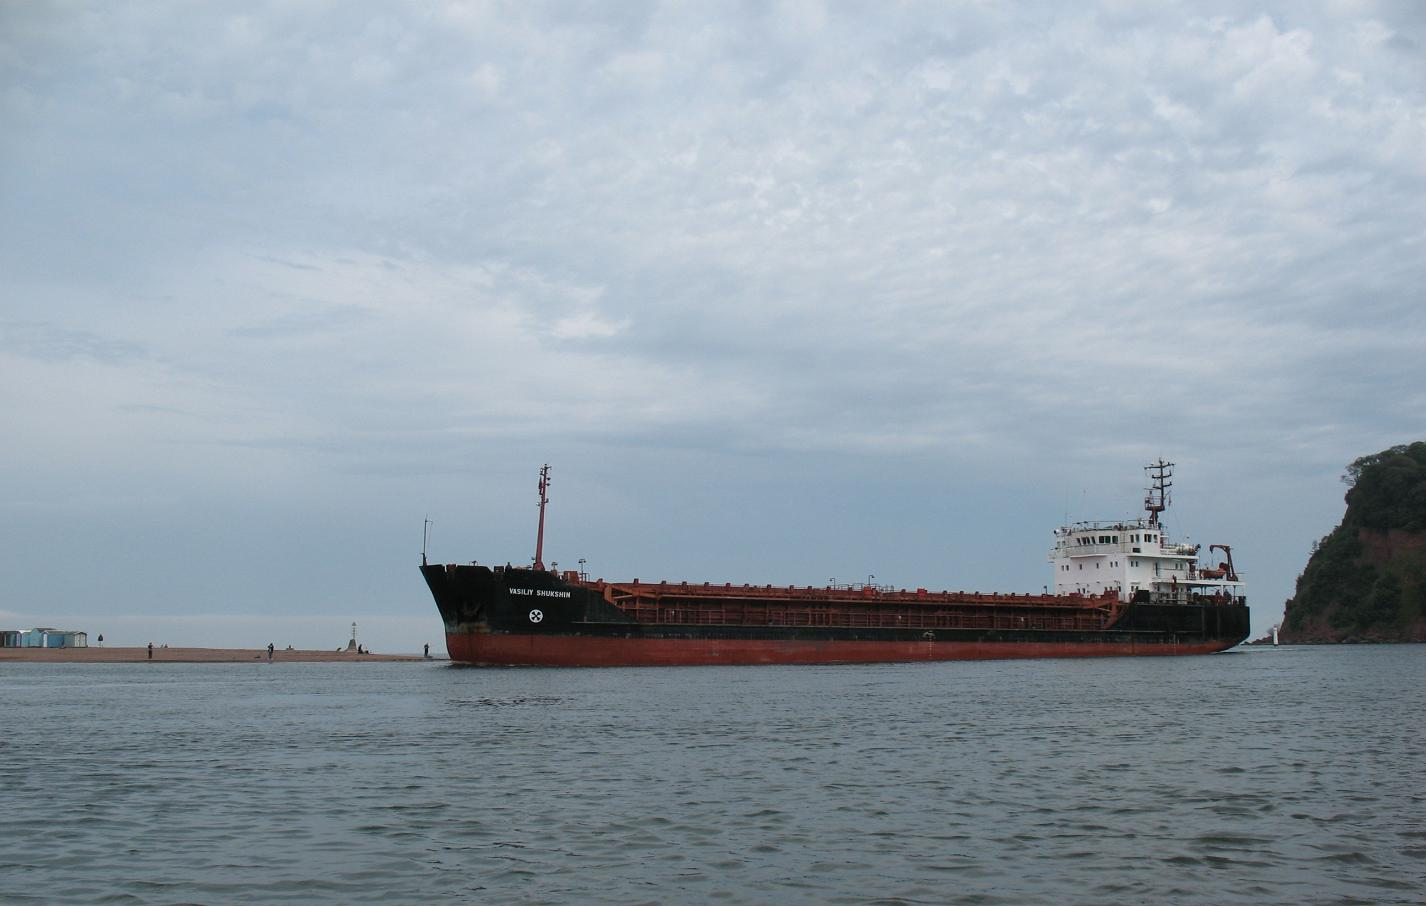 Tanker inside harbour